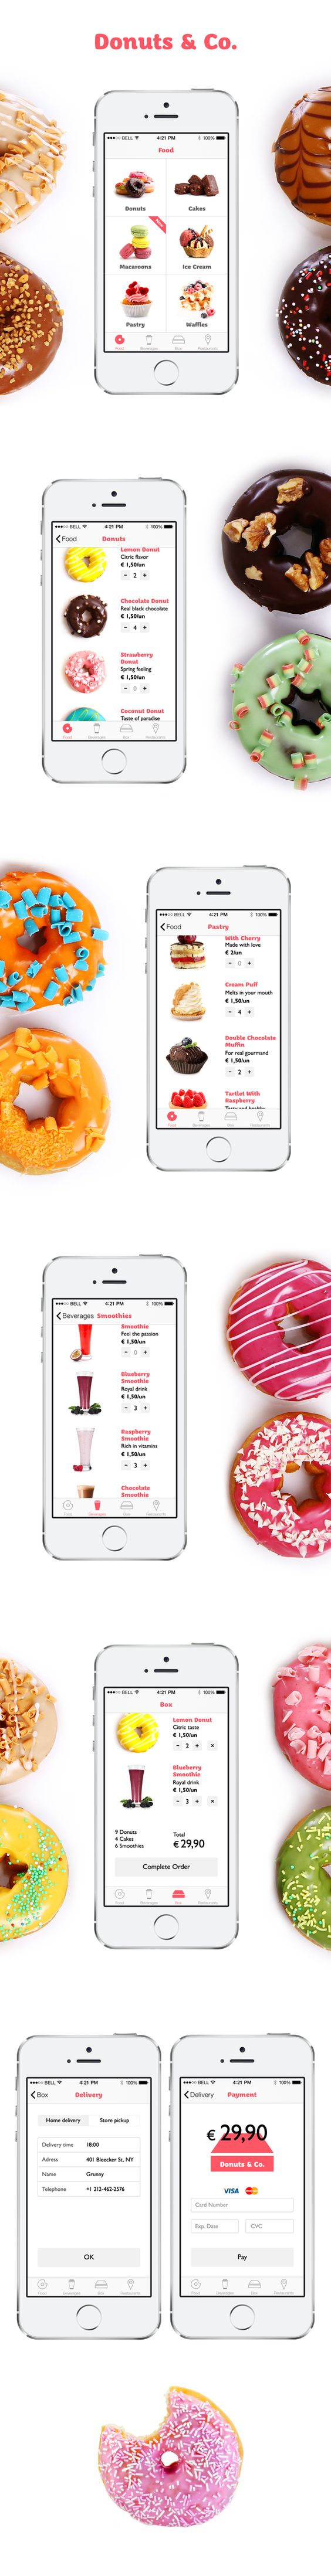 Donuts  Co. App for iPhone 0